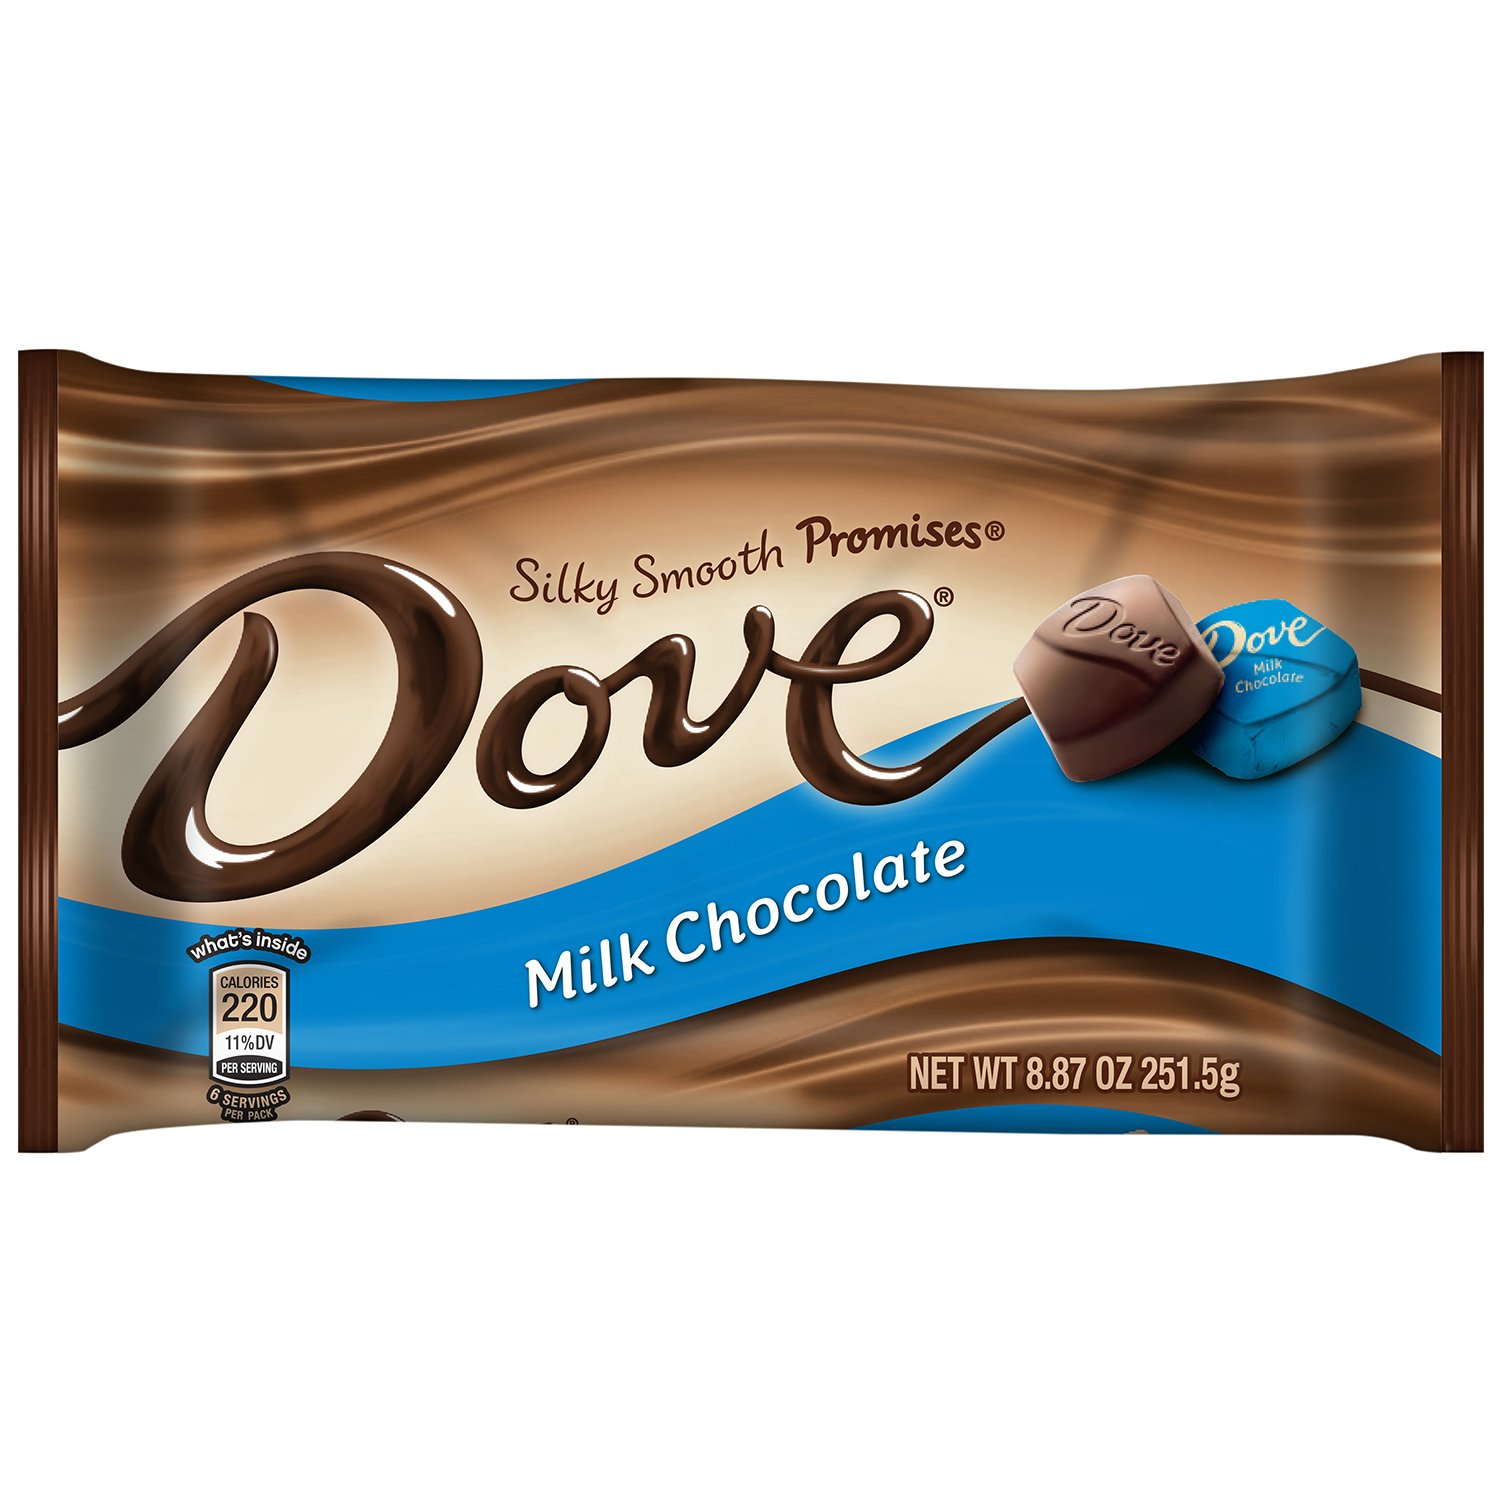 DOVE PROMISES Milk Chocolate Candy 8.87-Ounce Bag (Pack of 12) by Dove